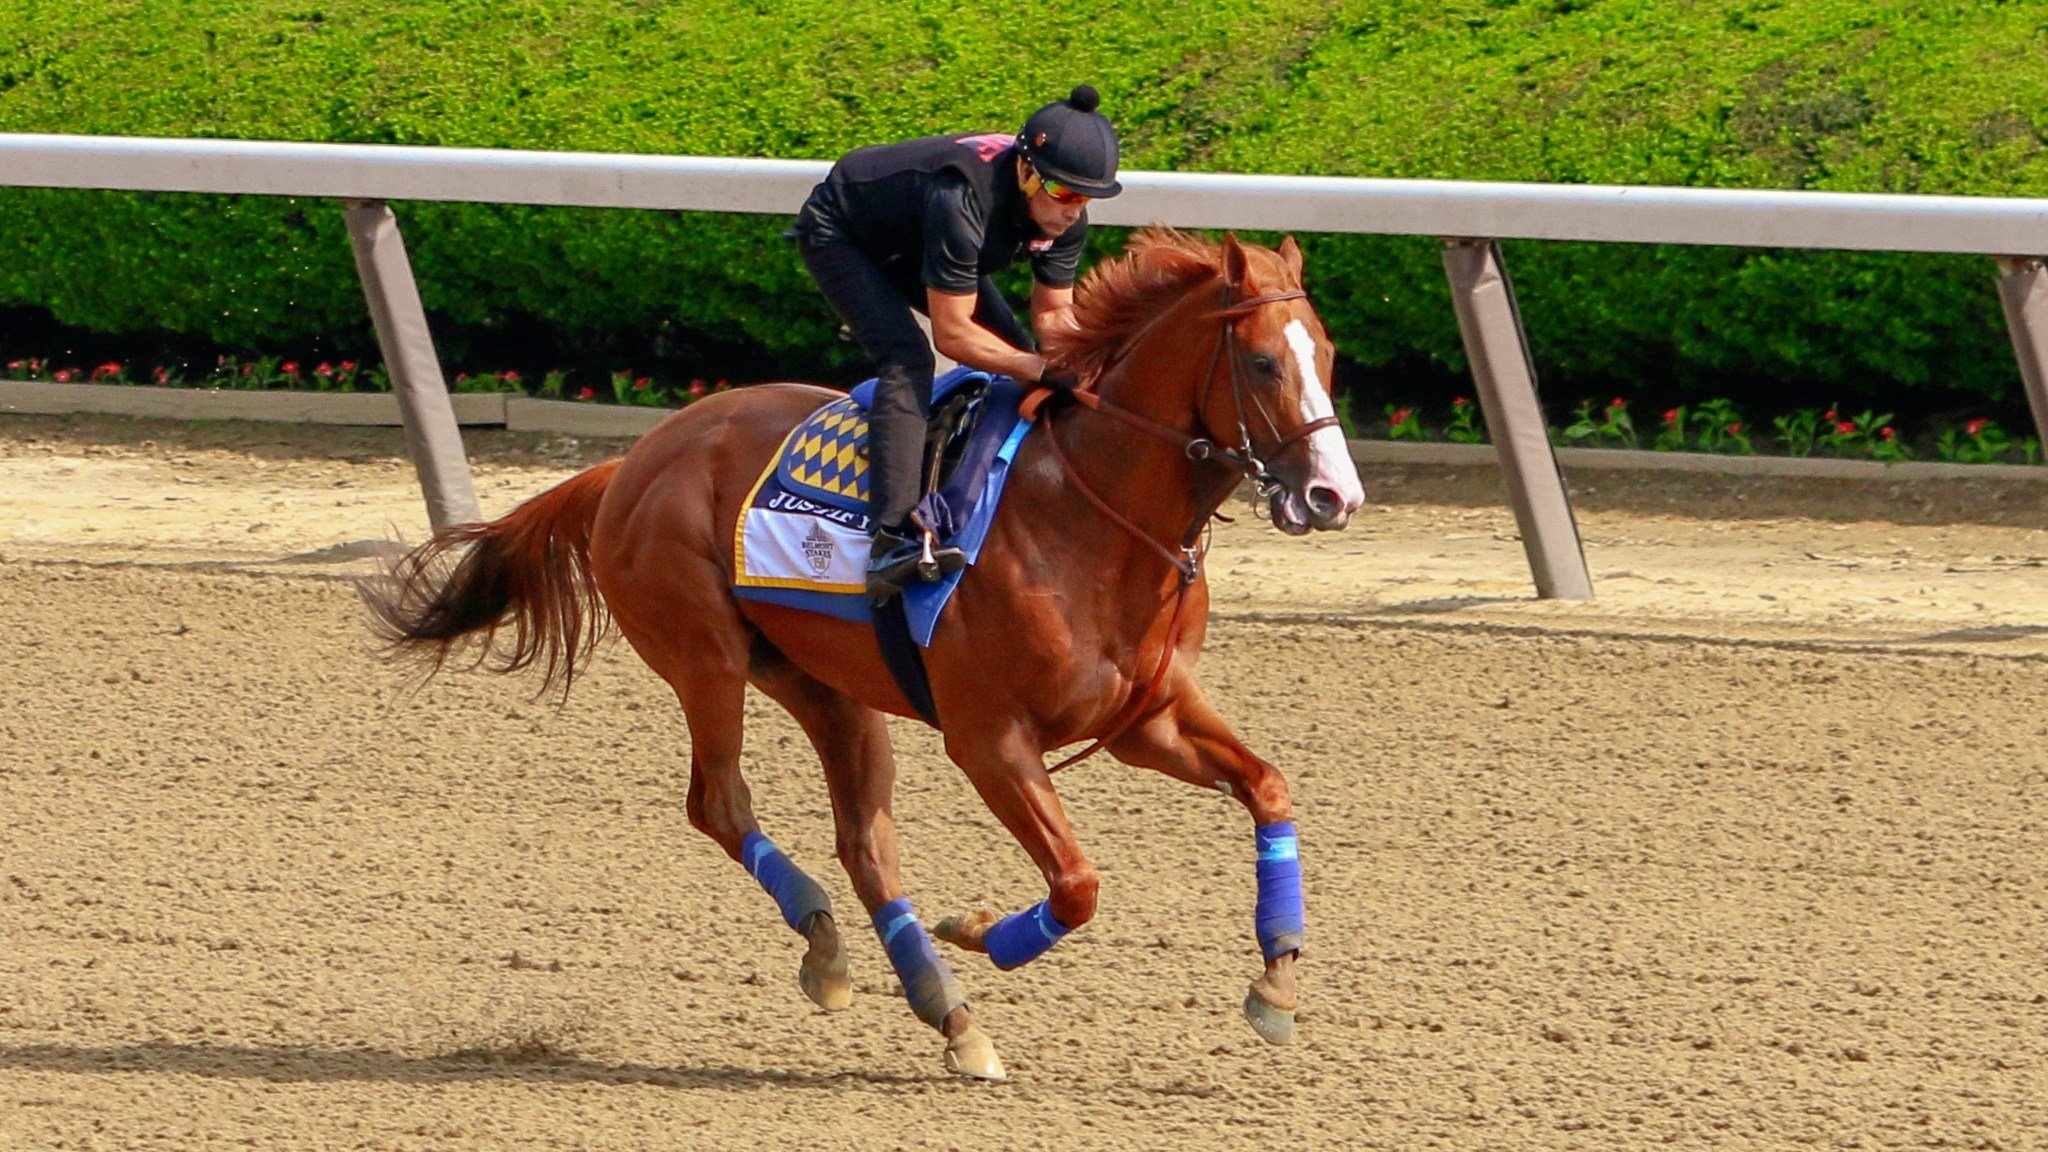 Justify concludes his final pre-Belmont gallop on Friday. (WDRB photo by Eric Crawford)